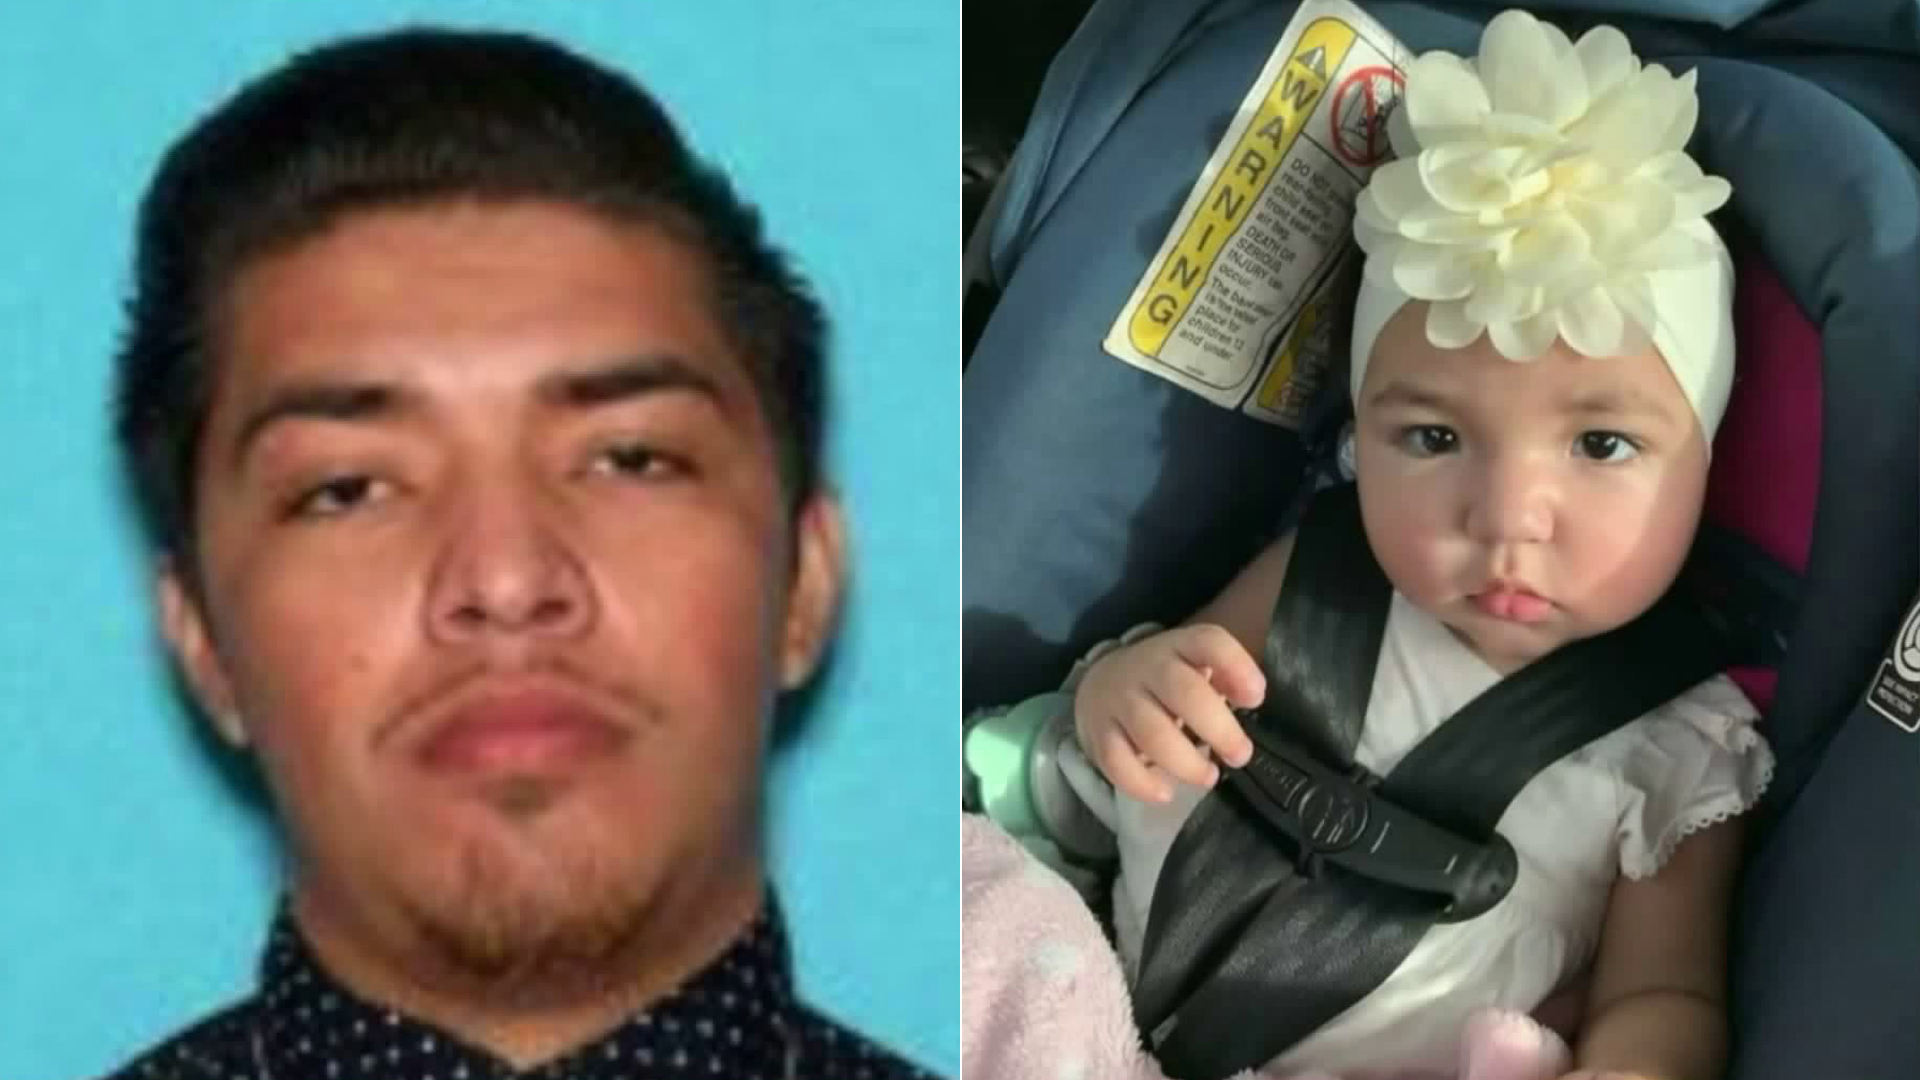 Alexander Echeverria, left, is seen in a photo released by authorities. Alexia Rose Echeverria, right, is seen in a family photo.